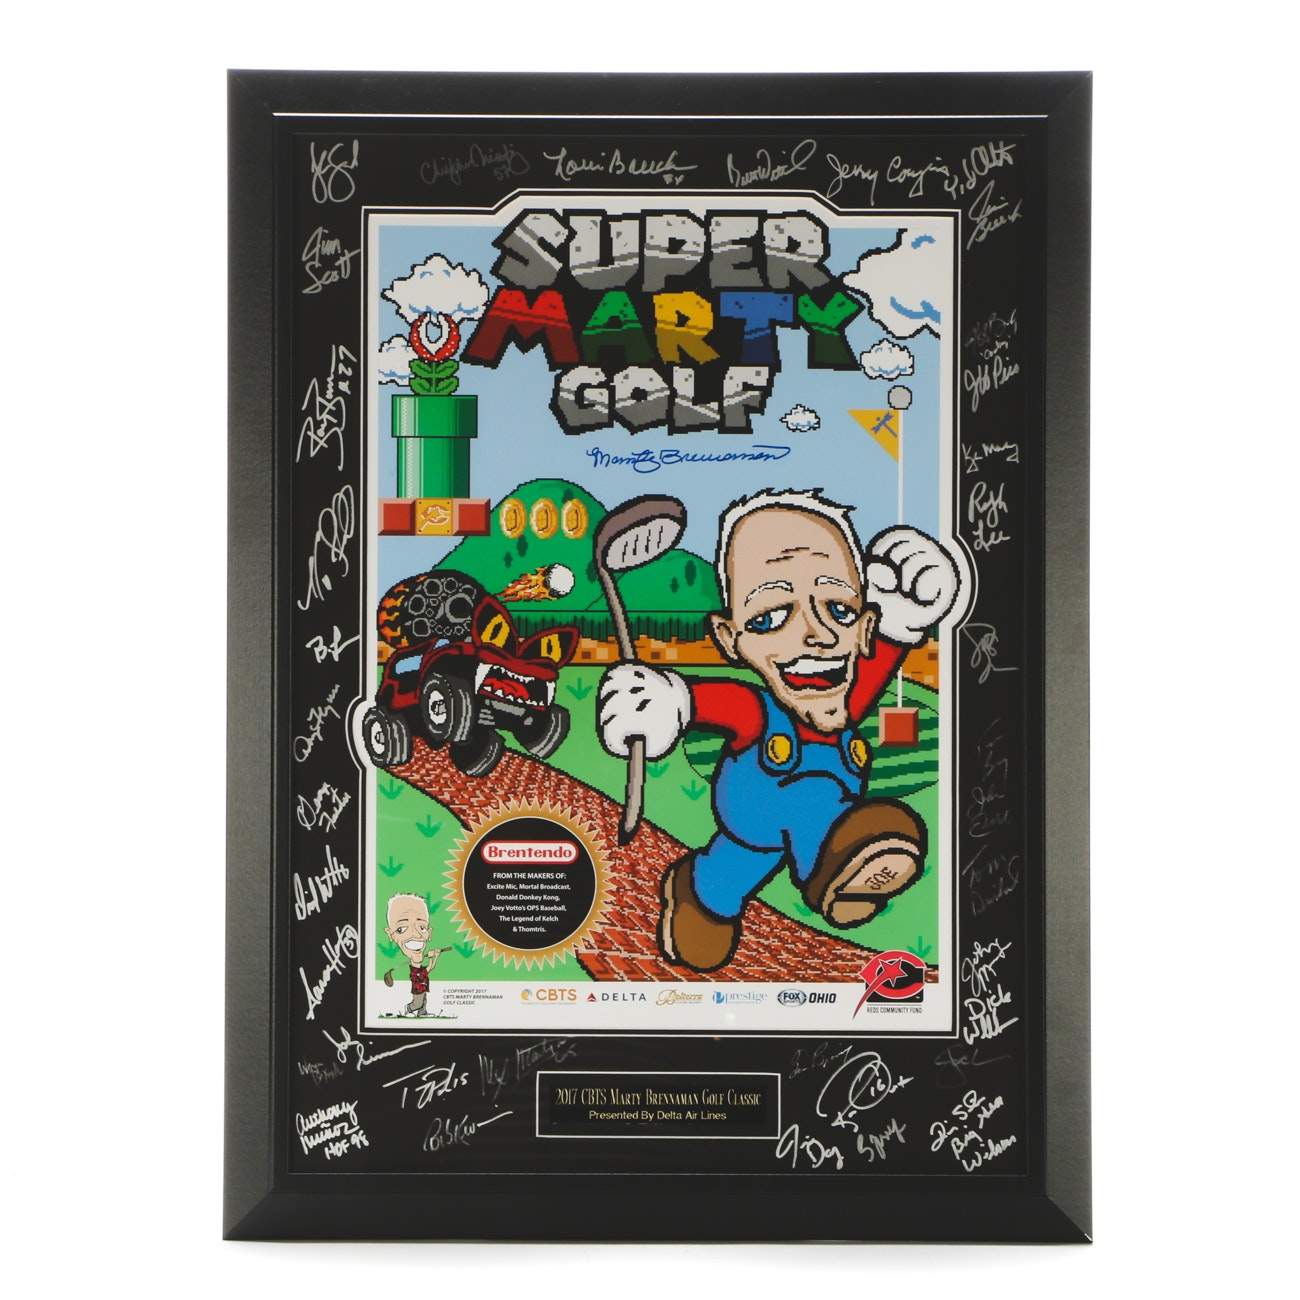 Marty Brennaman and Friends Signed Golf Classic Print